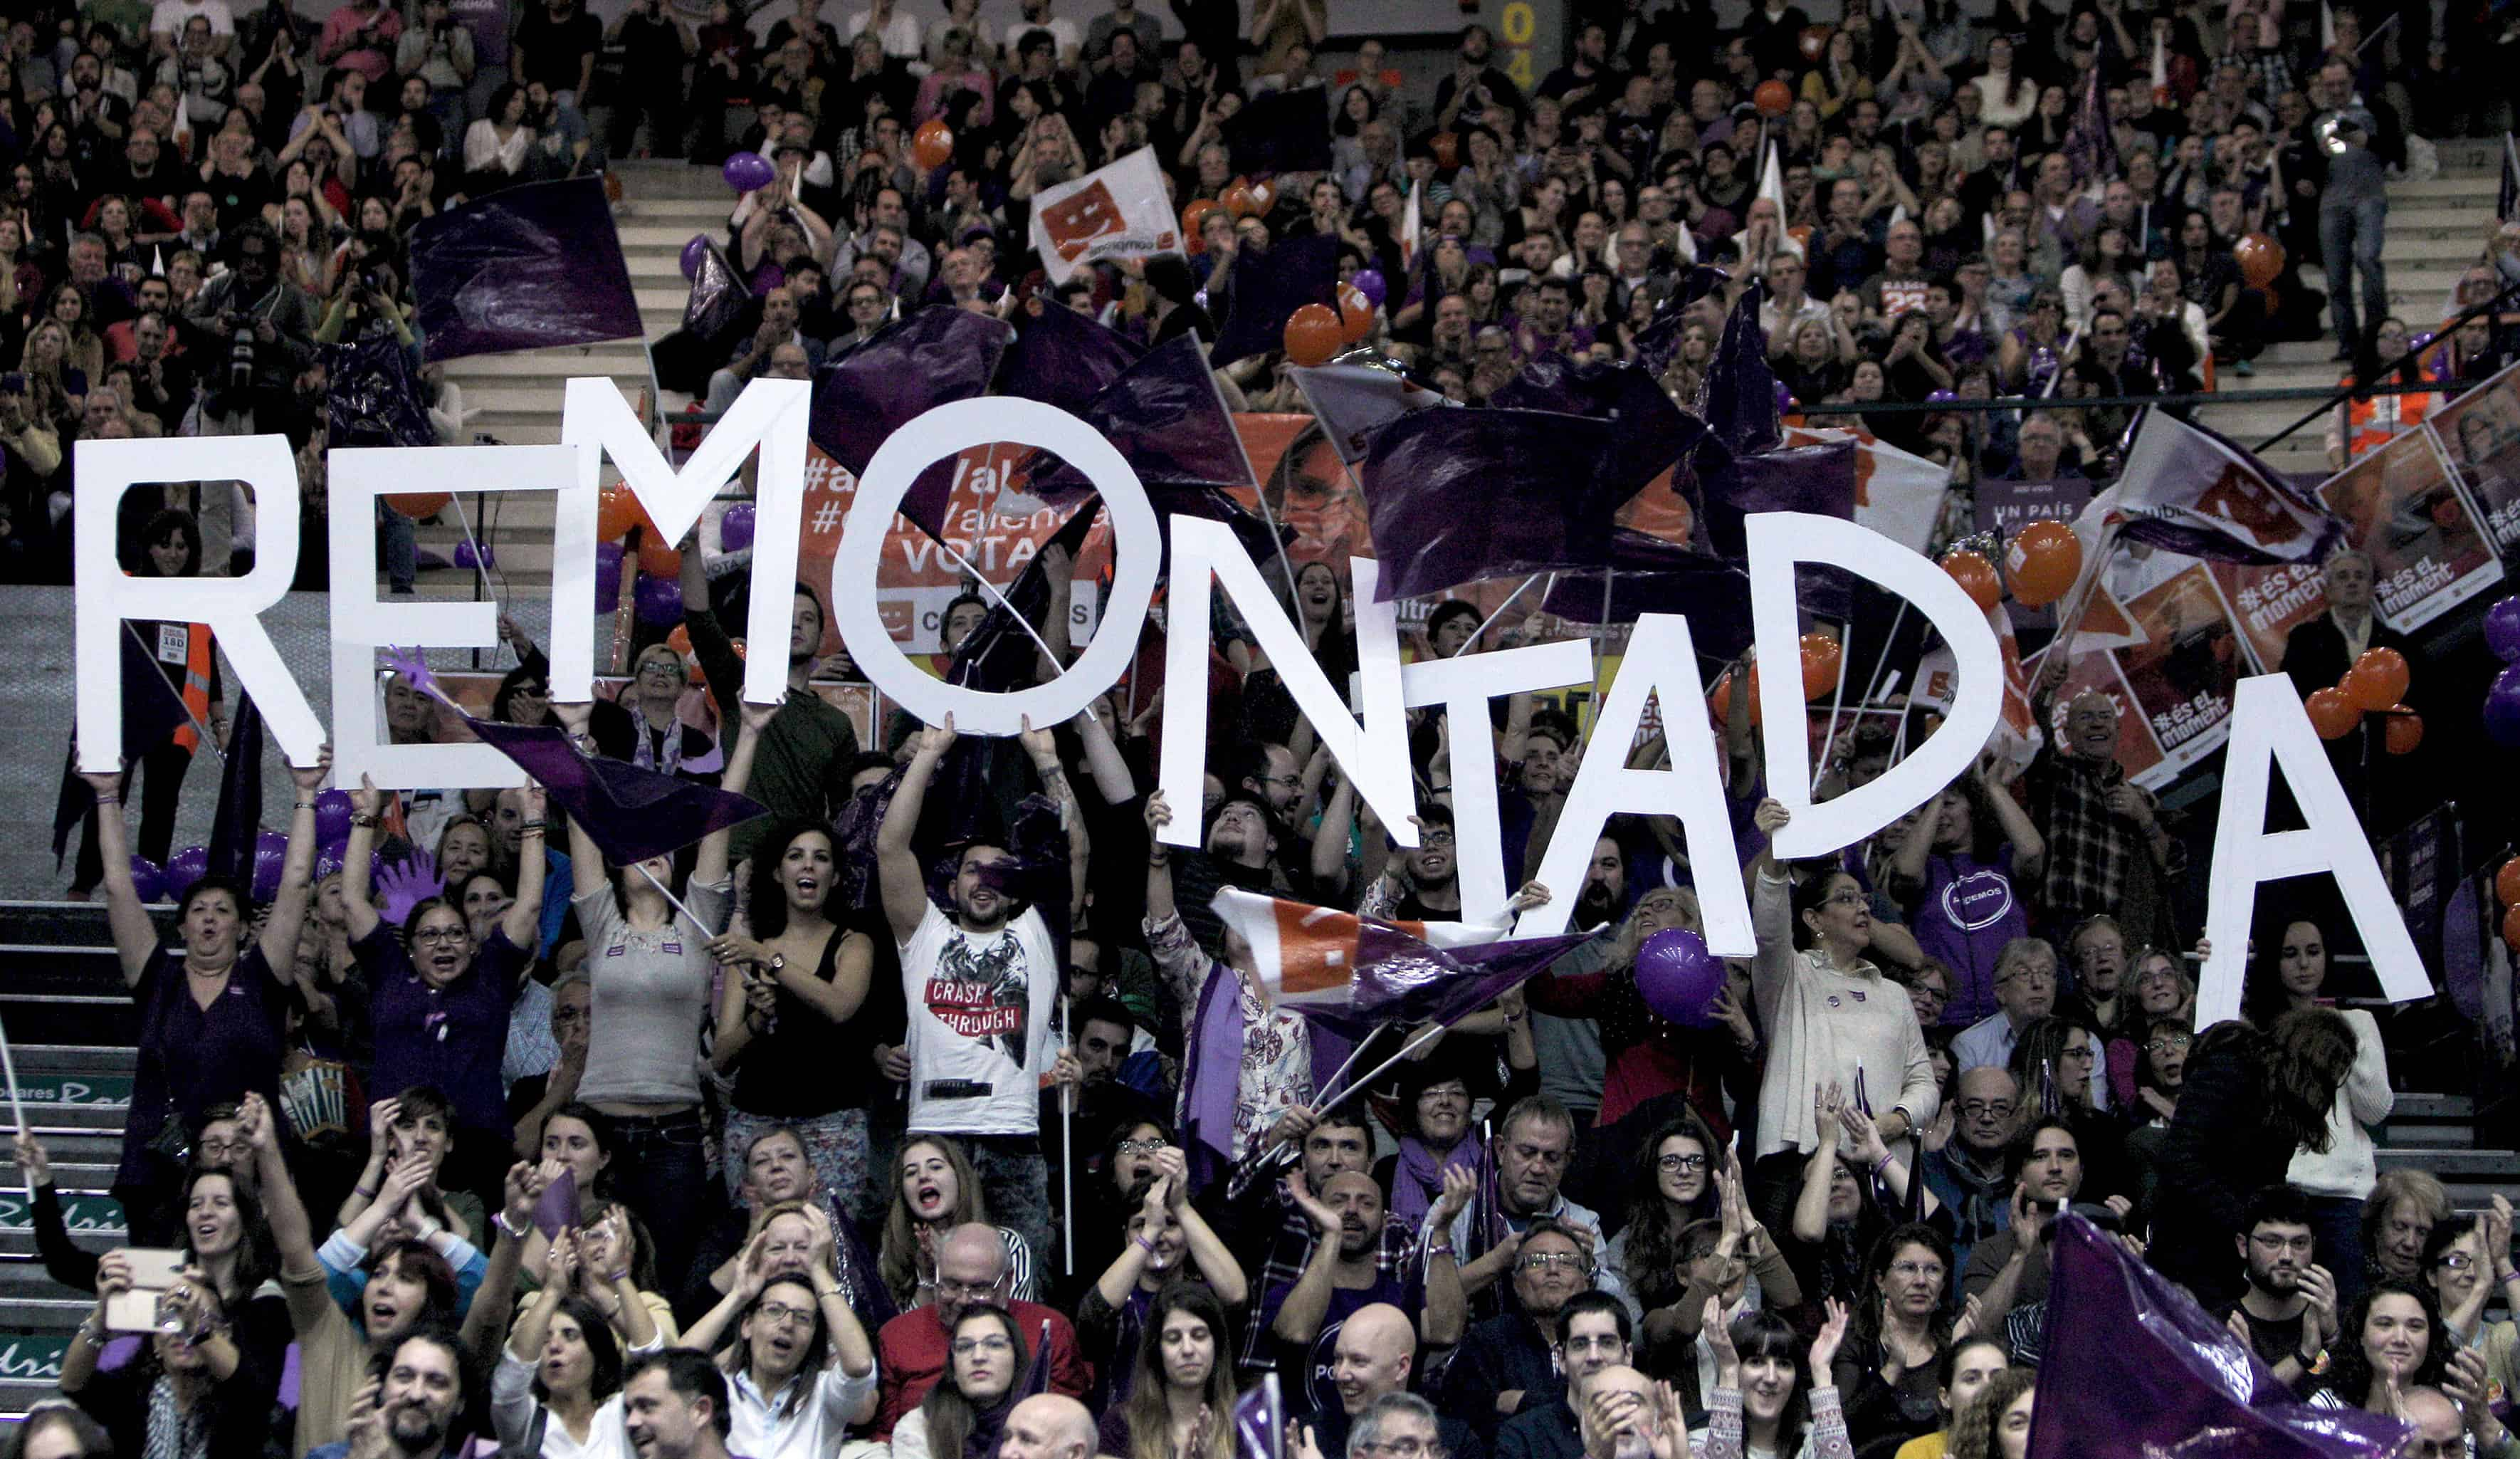 Spain elections: Podemos